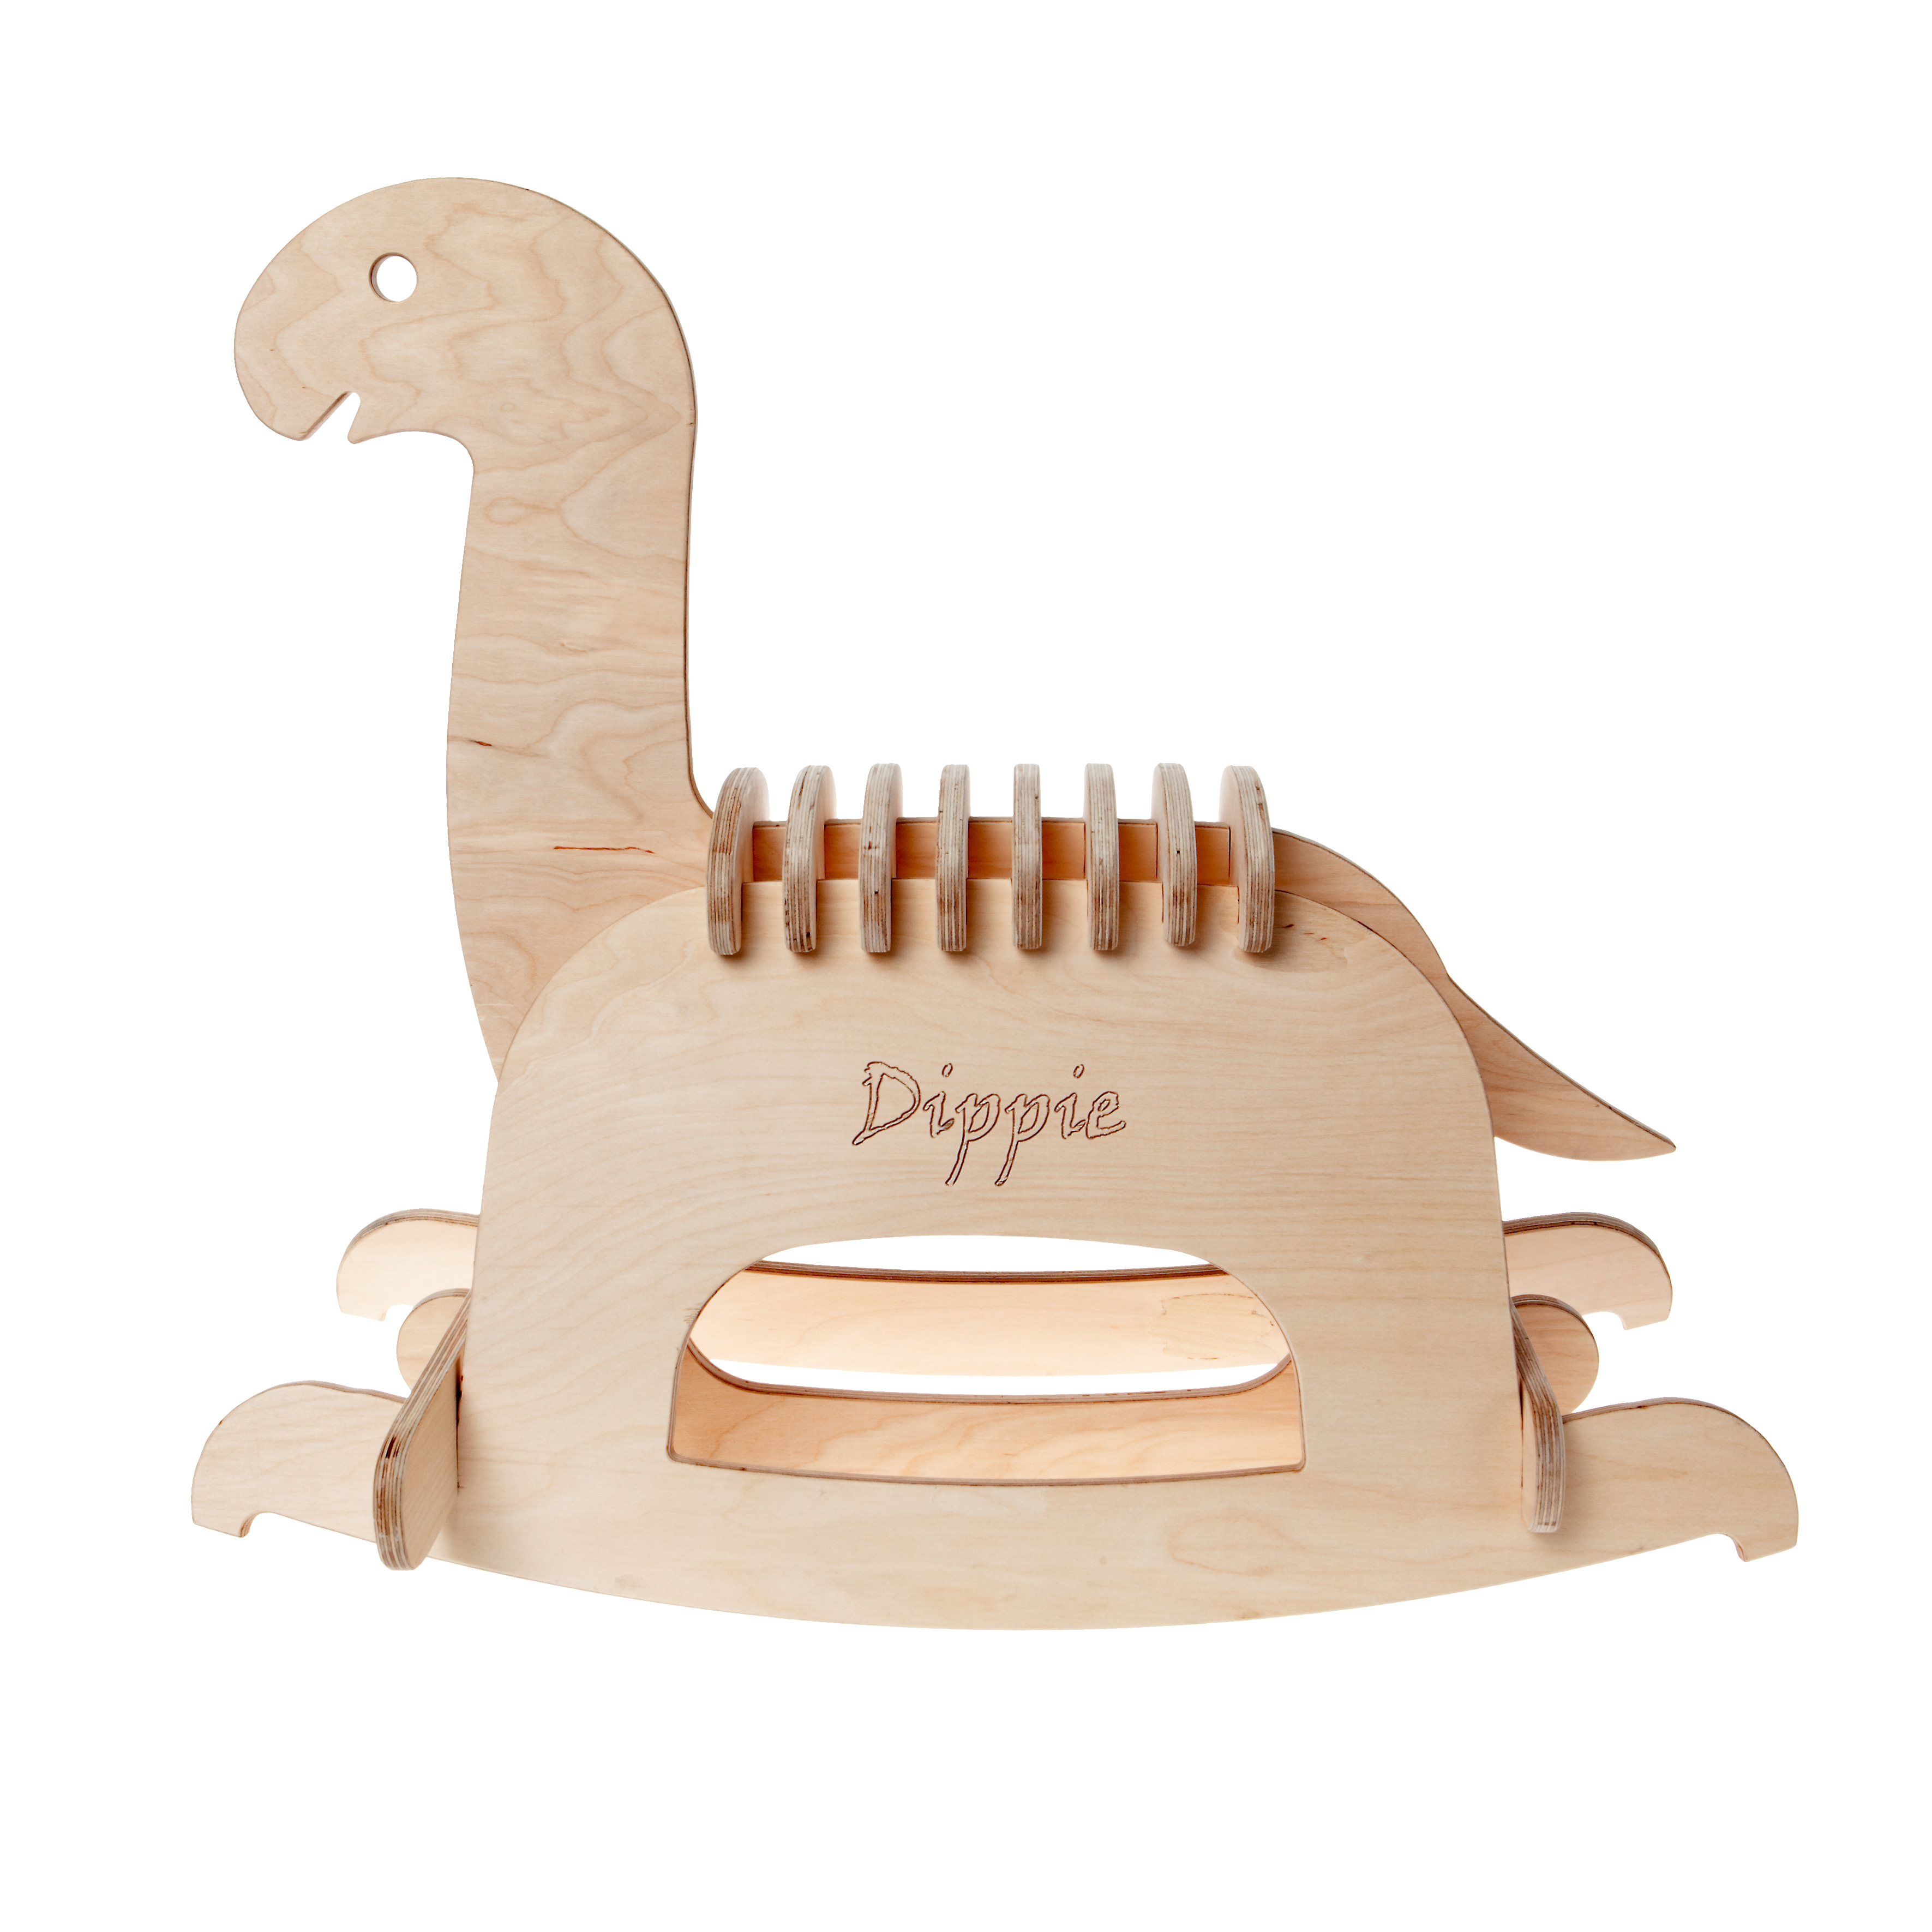 Wooden Diplodocus rocker, £150.00, www.nhmshop.co.uk